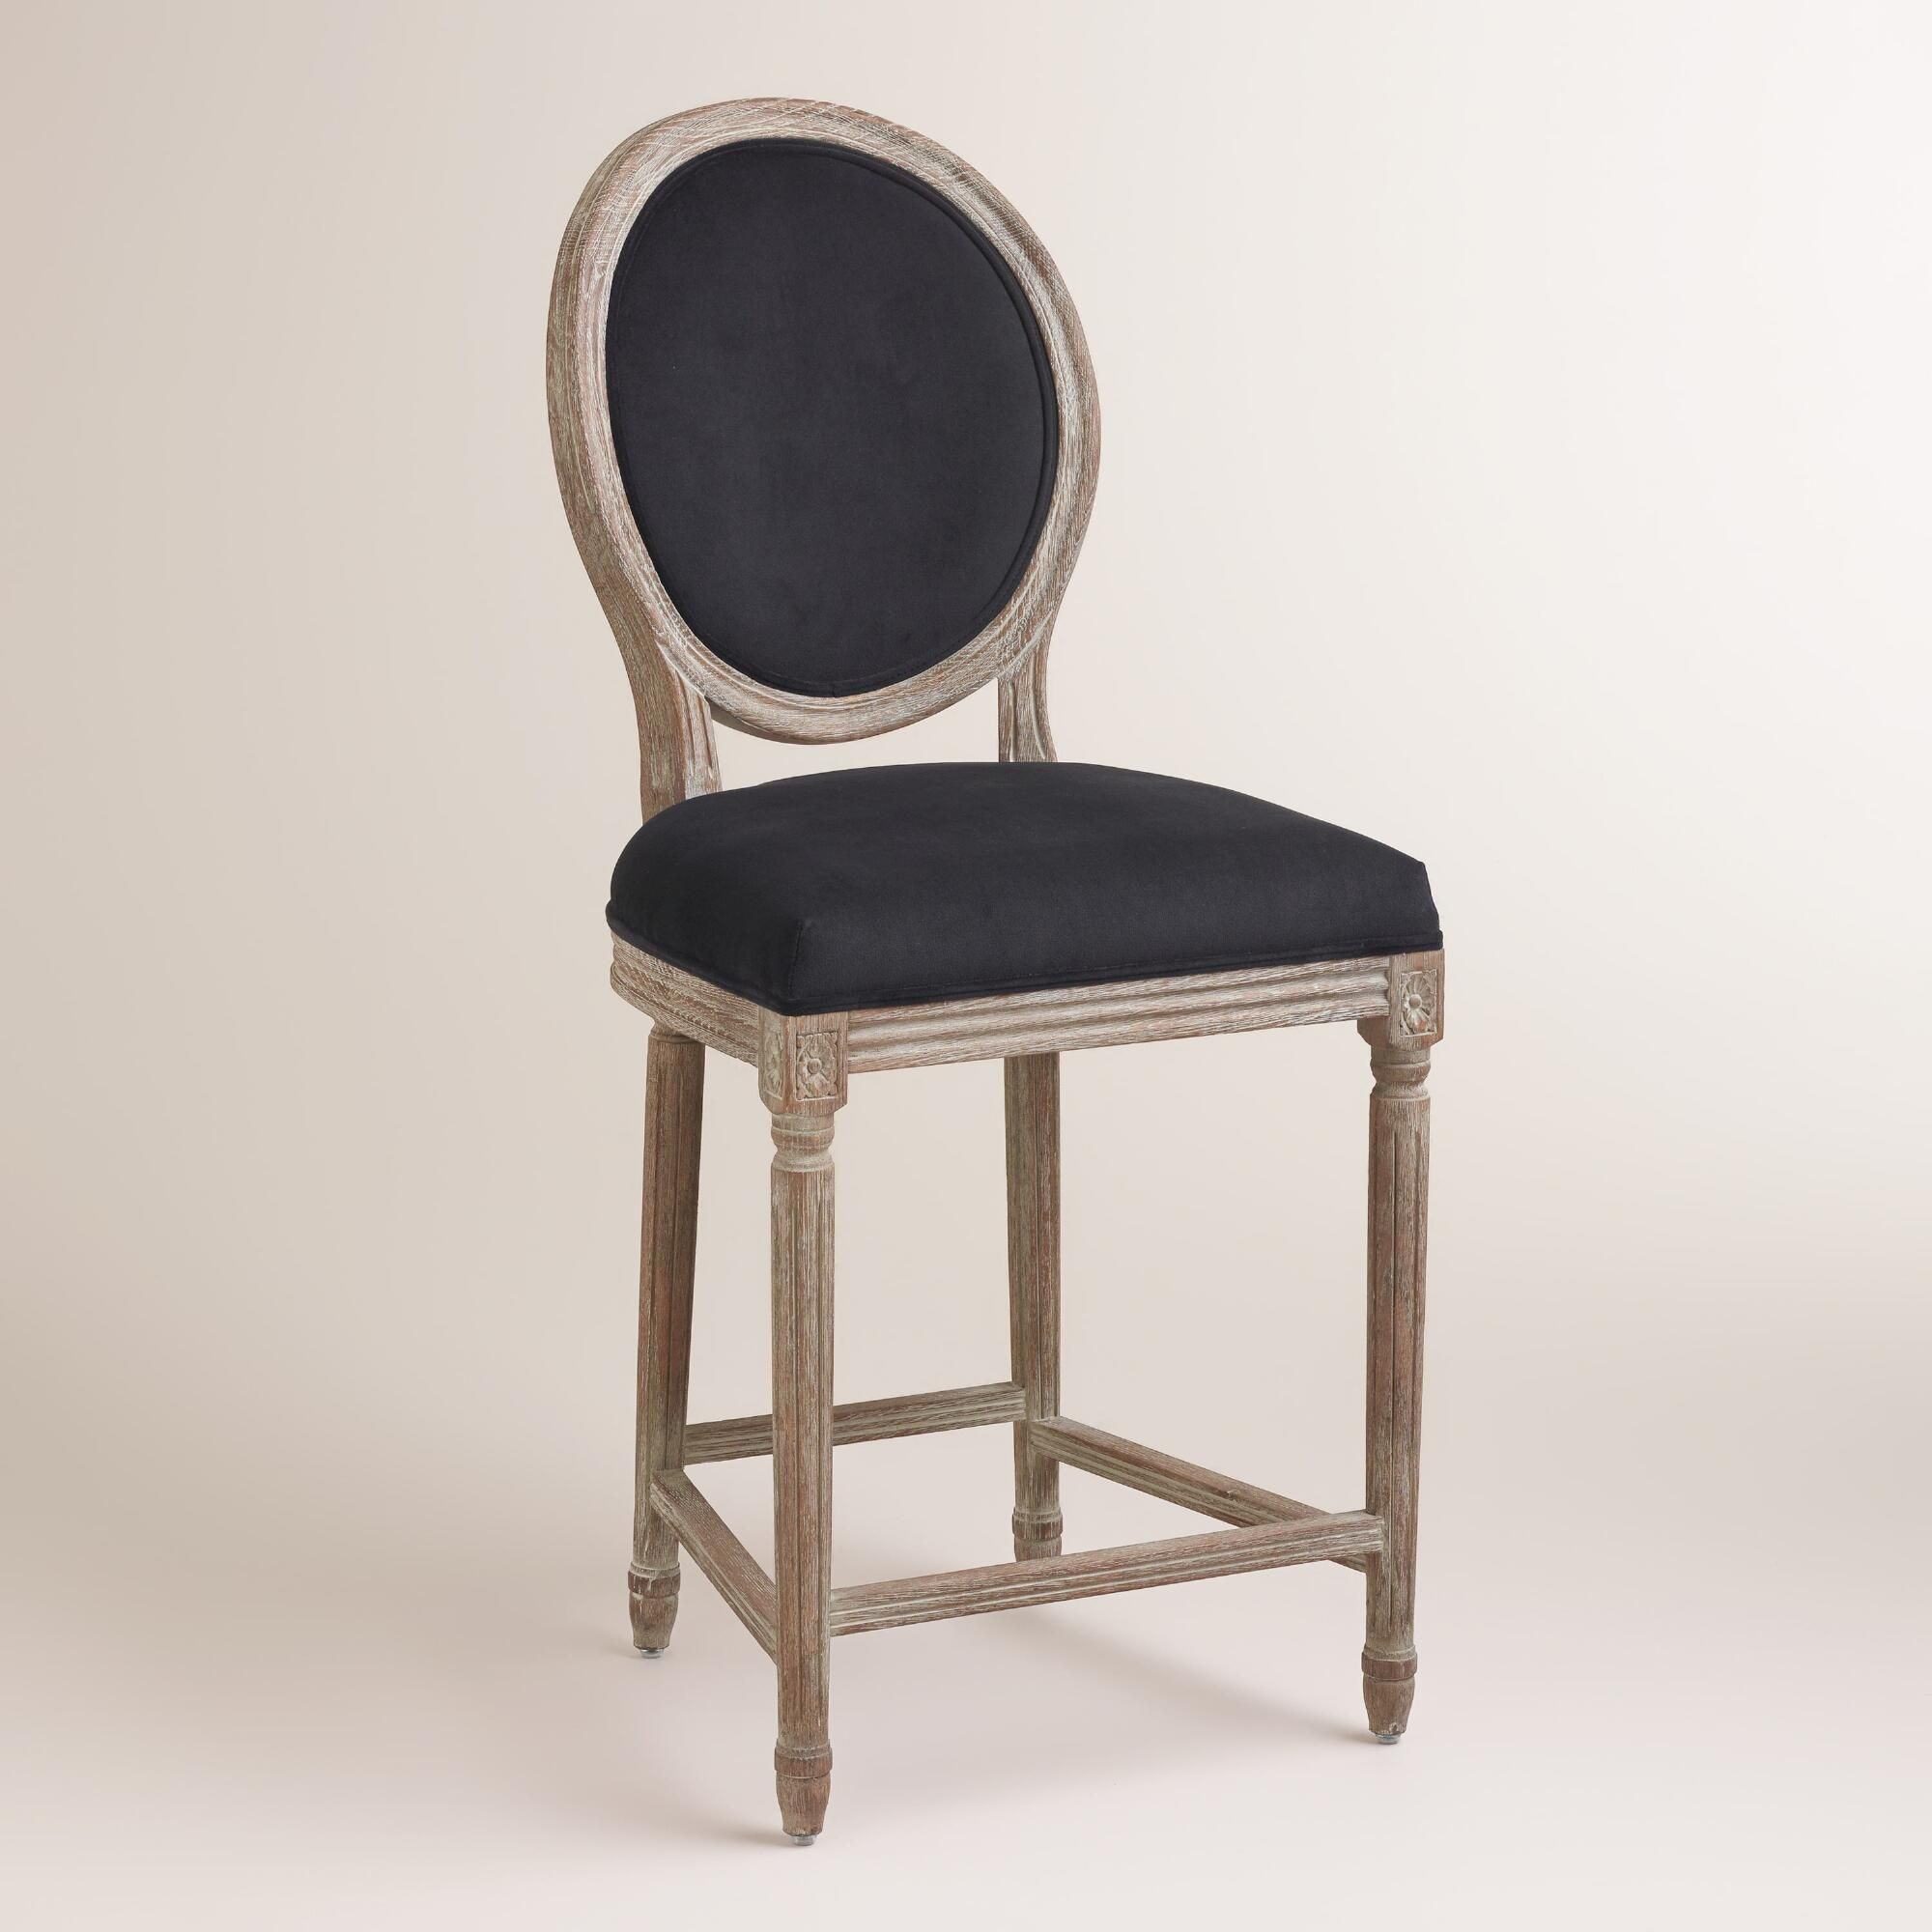 Country crafted wooden chair and stool ebth - A Classic With A Round Back Silhouette Our Black Paige Counter Stool Is Crafted Of